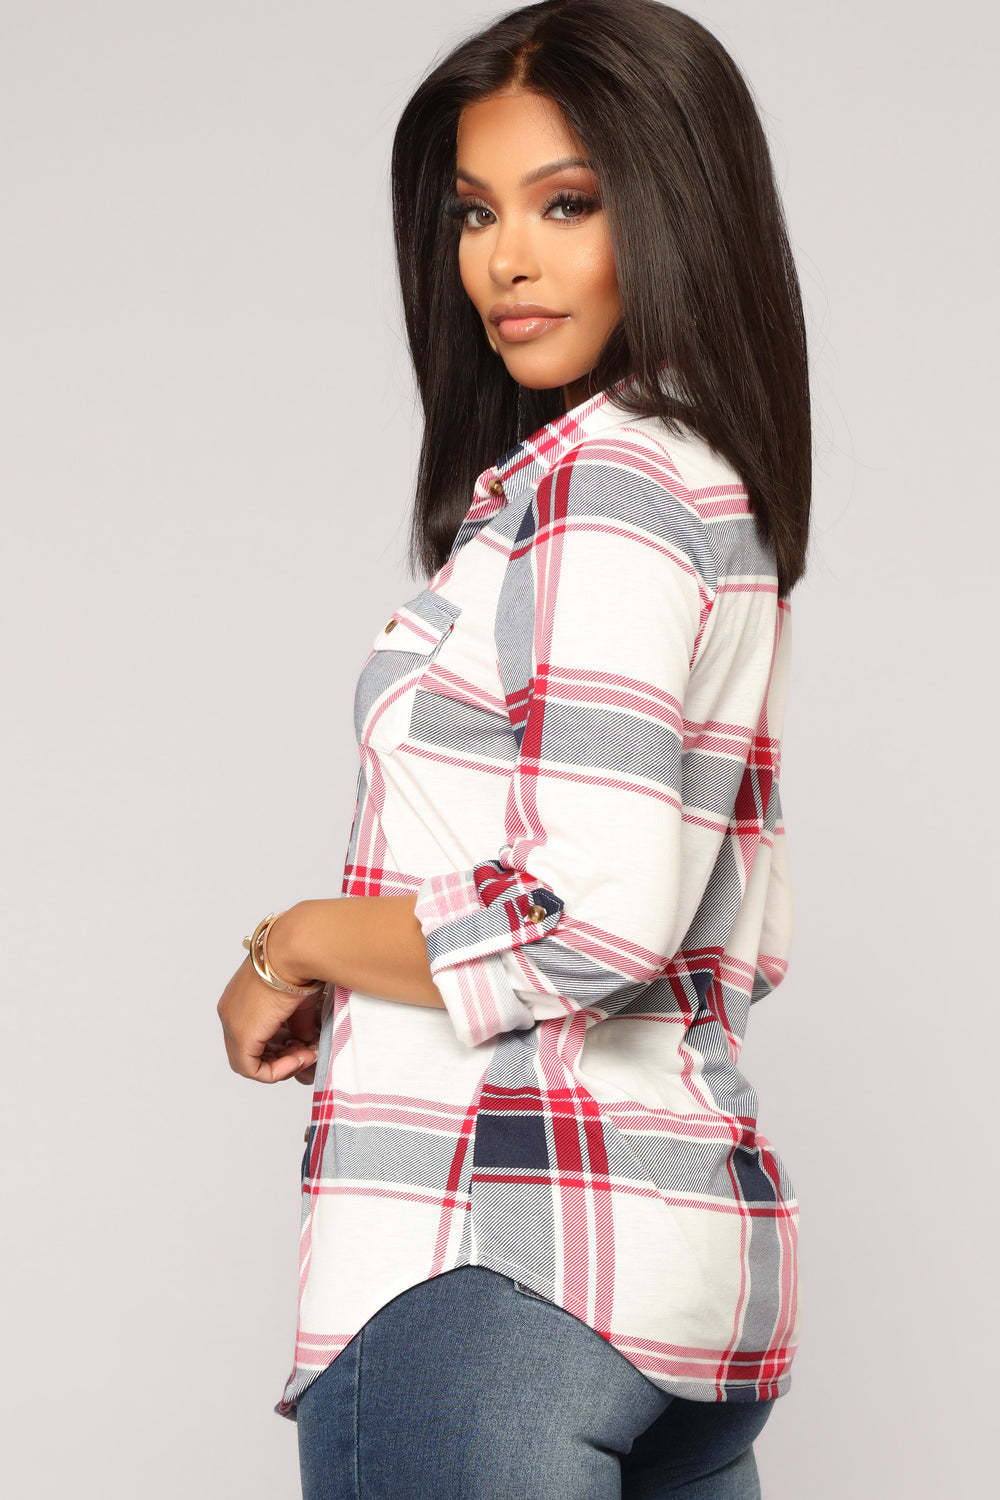 Soul Mate Red Plaid Top - Red/Black